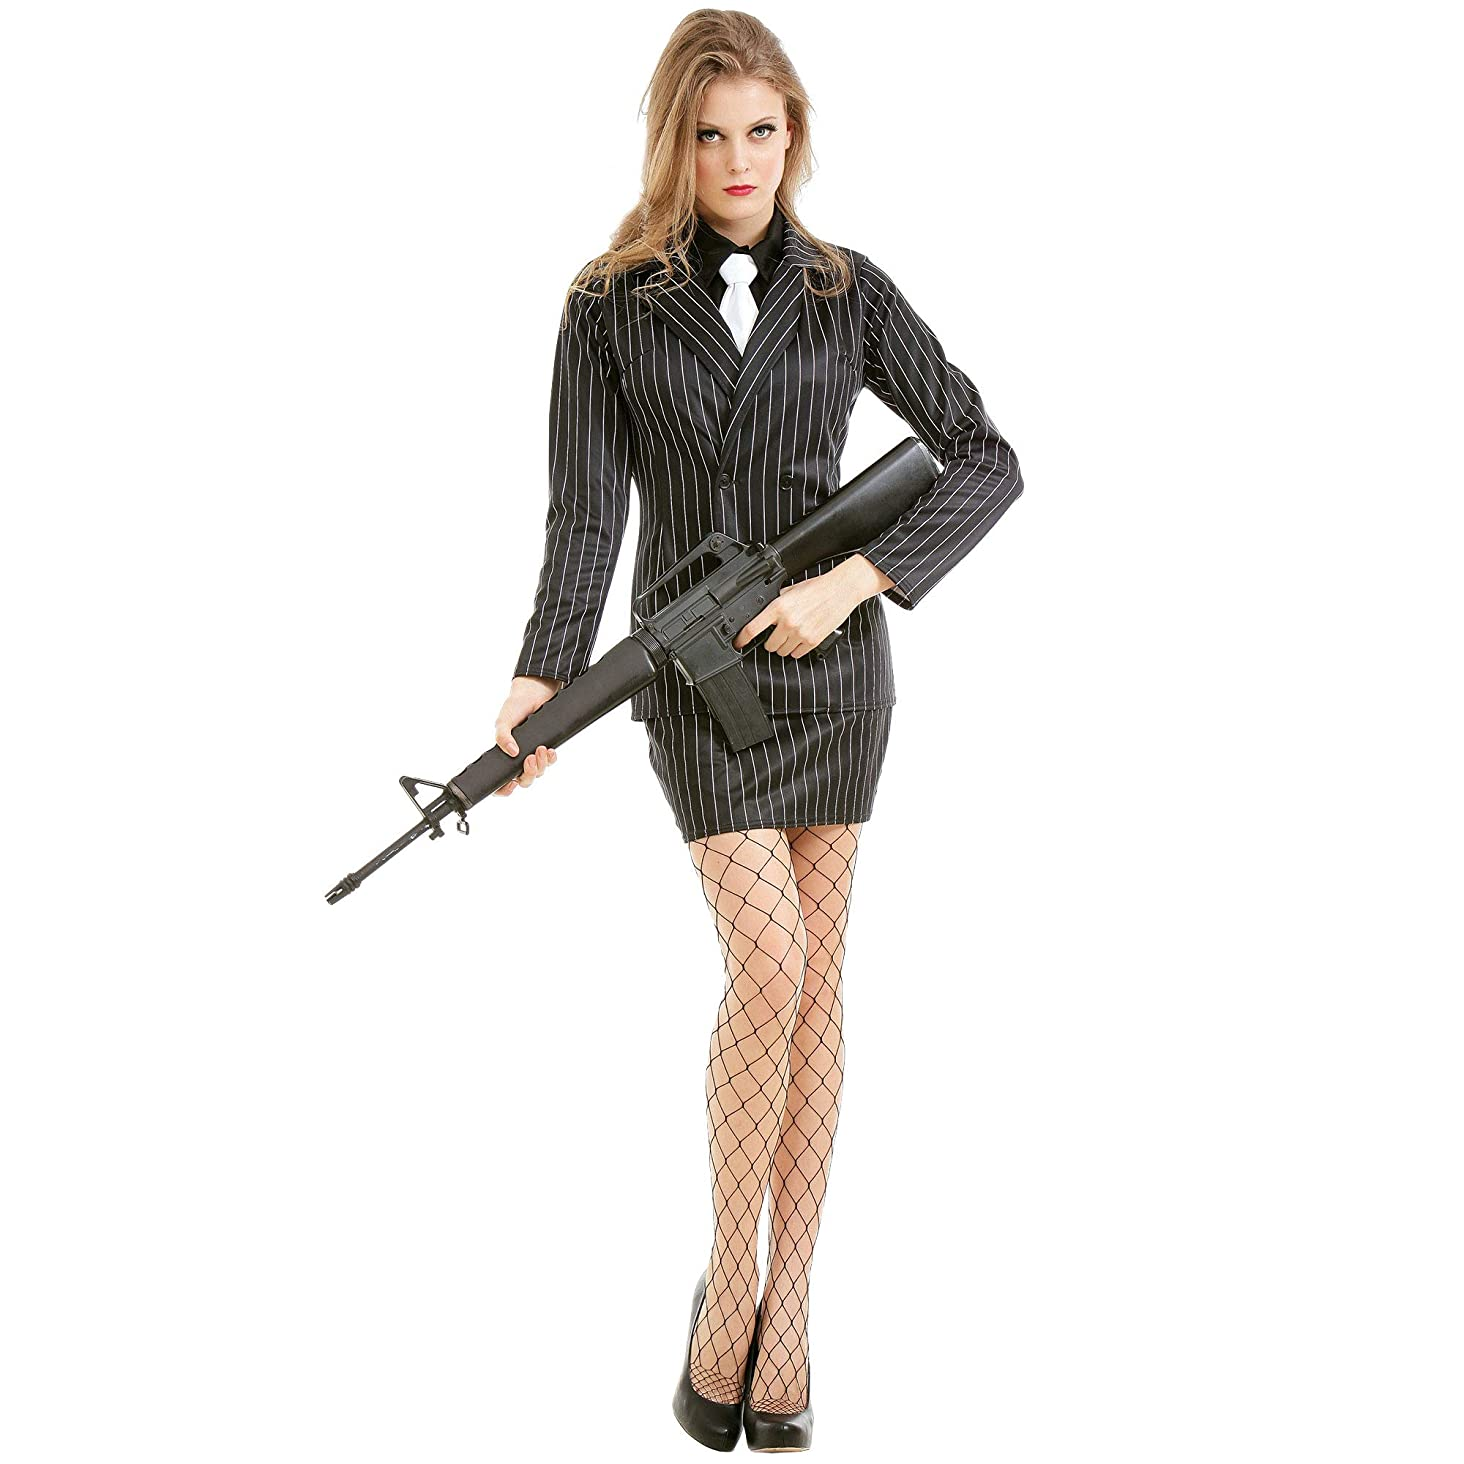 Dangerous Dame Women's Halloween Costume | Classic 1920s Gangster Outfit